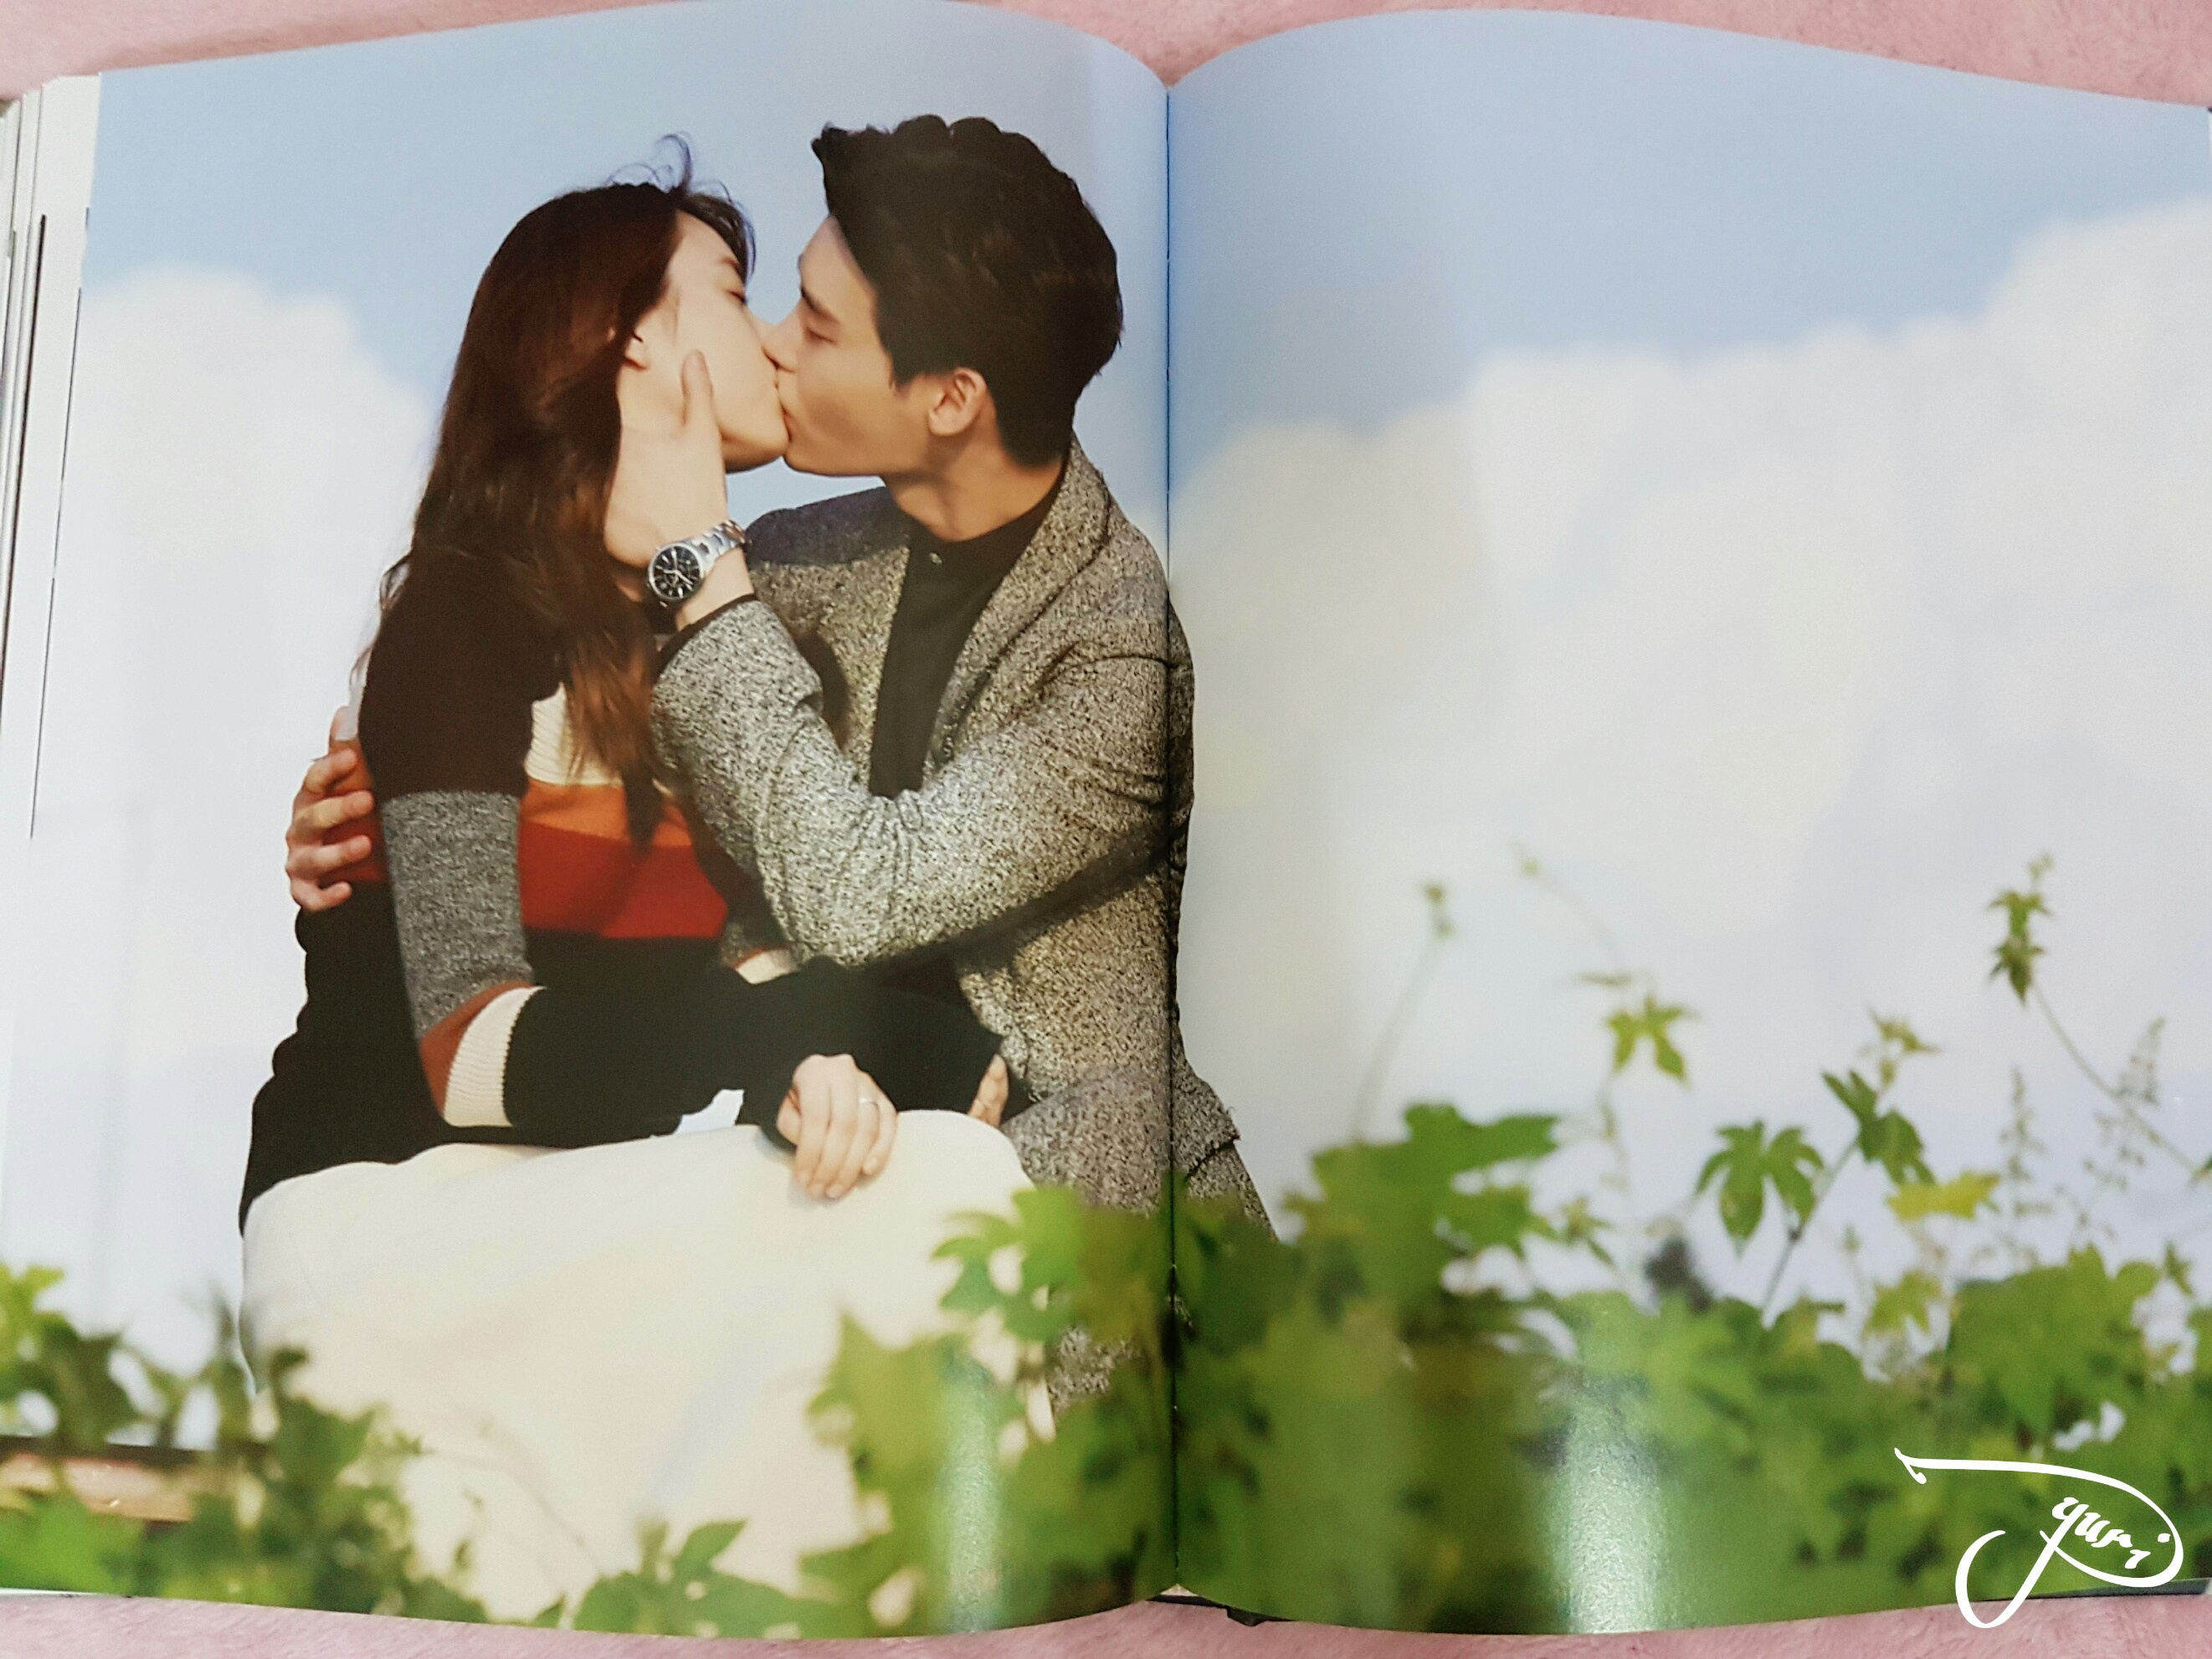 yurism w two worlds photo essay o s t jung yuri yuri pte4